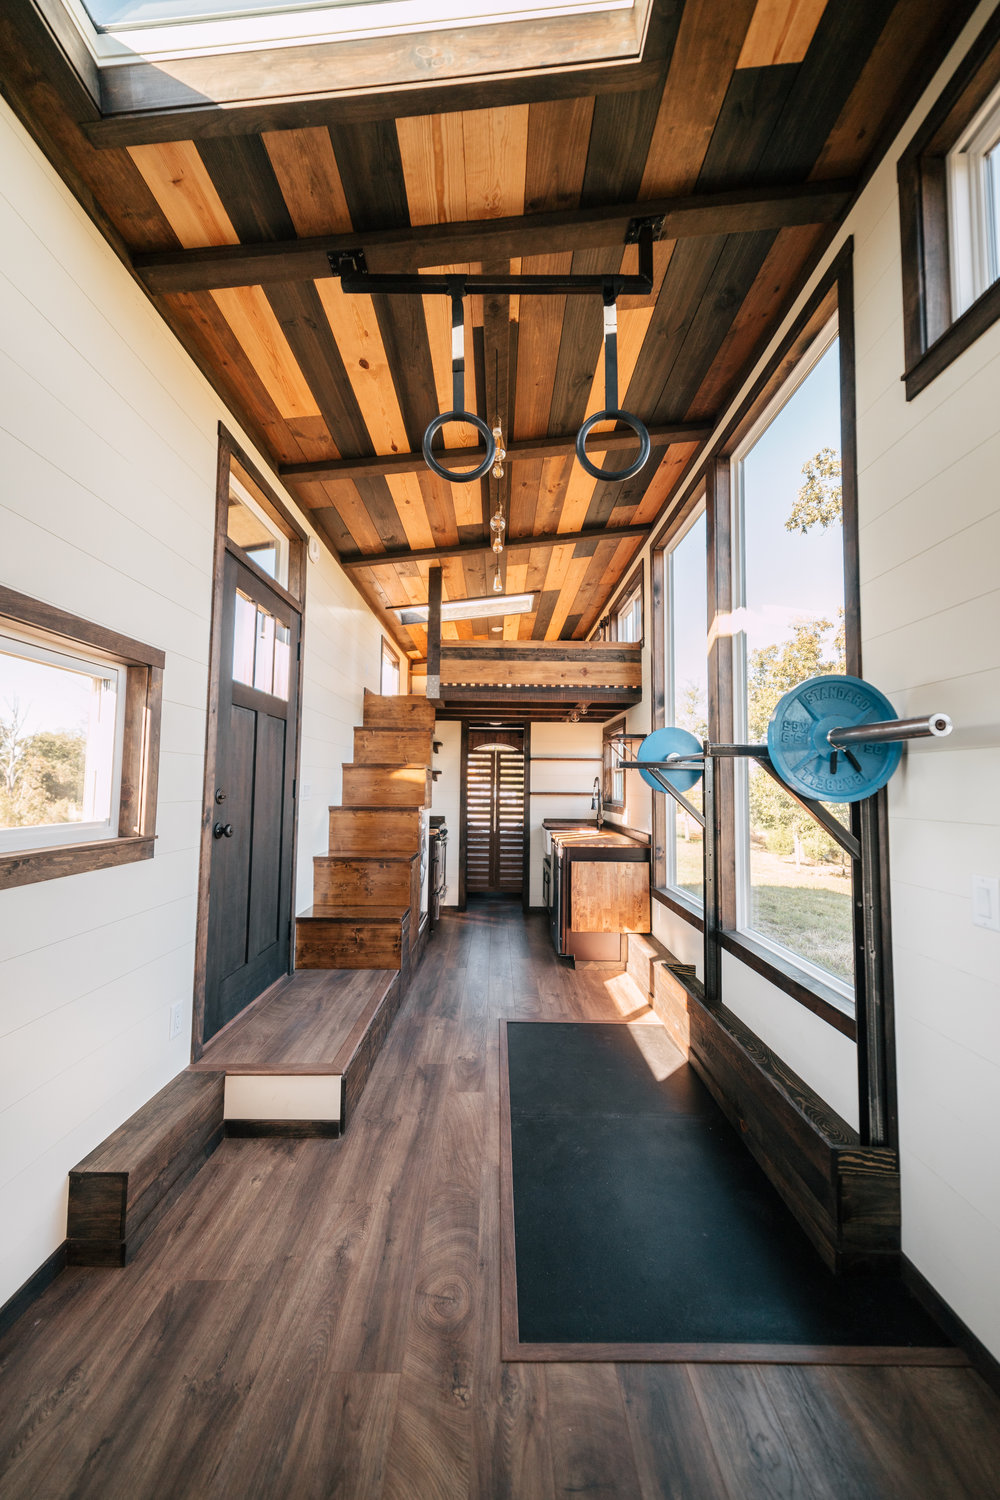 The Silhouette by Wind River Tiny Homes - integrated exercise floor, custom Olympic squat/bench rack, fold down table, storage stairs, gym rings, LED edison bulb light fixture, multi stained ceiling